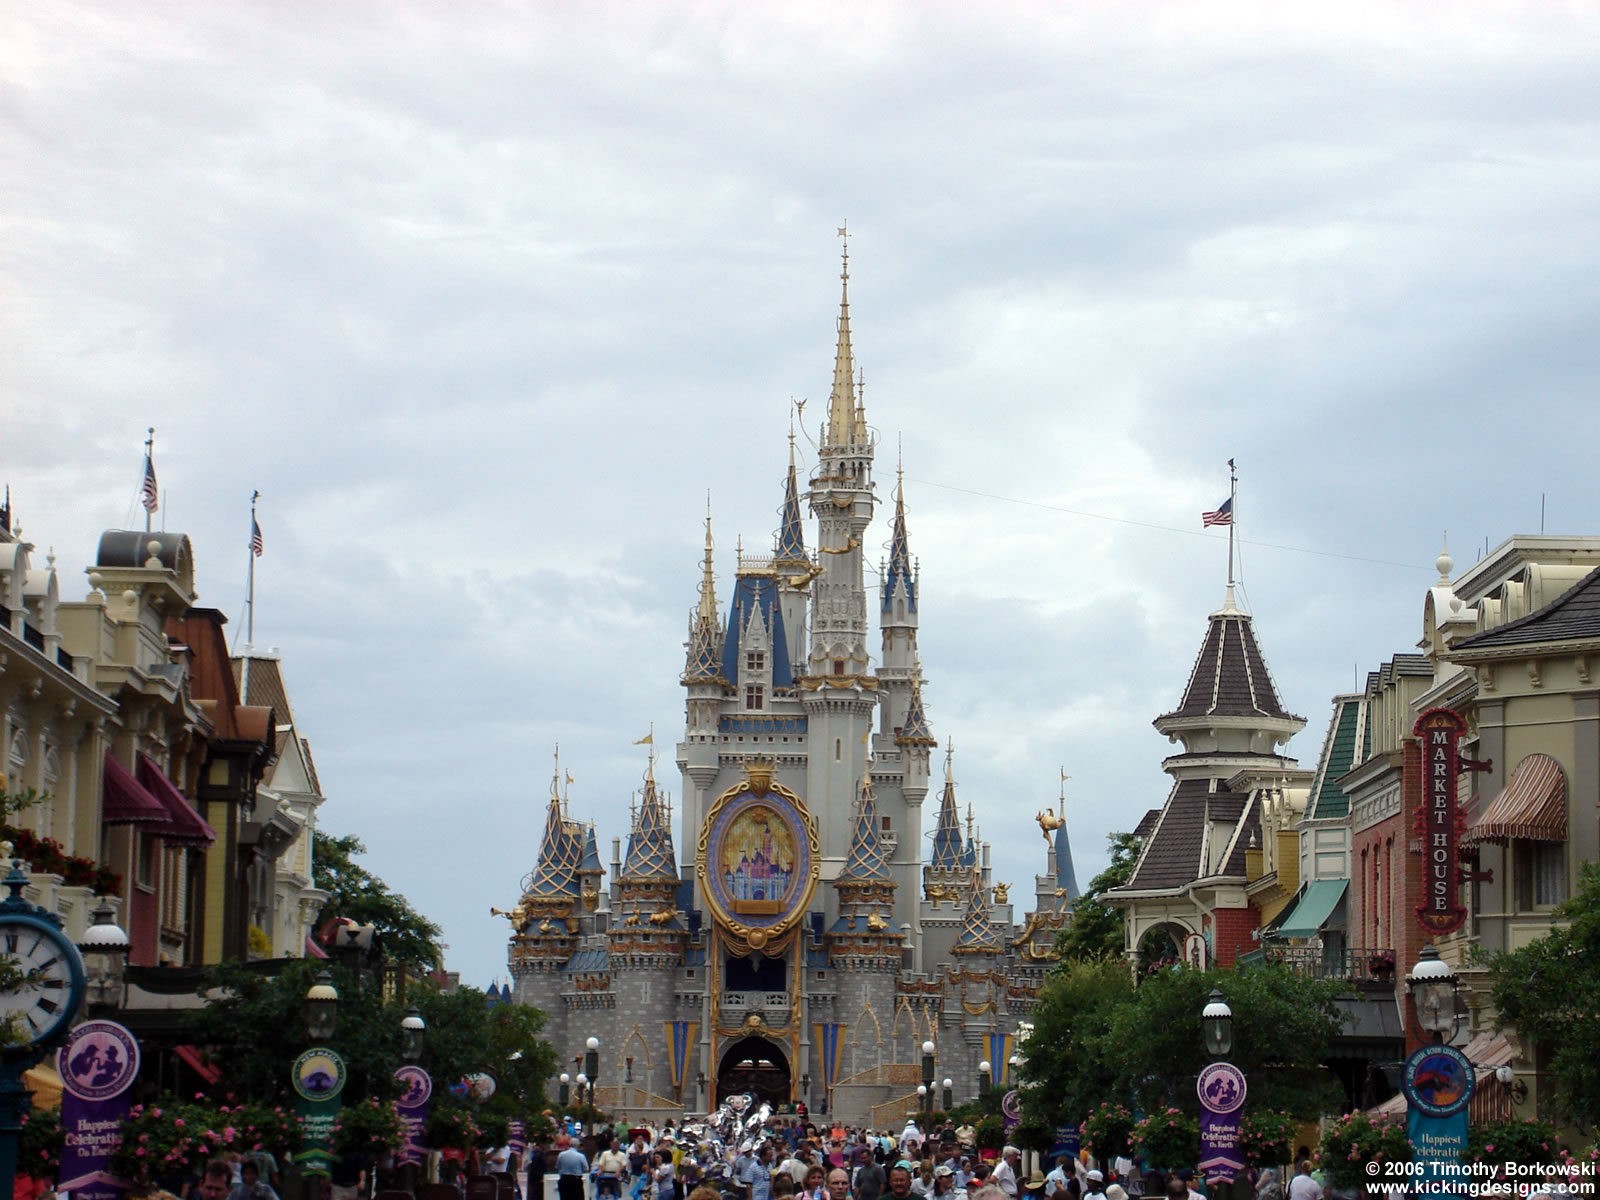 kickingdesignscomwallpaperarchivedwalt disney worldmagic kingdom 1600x1200